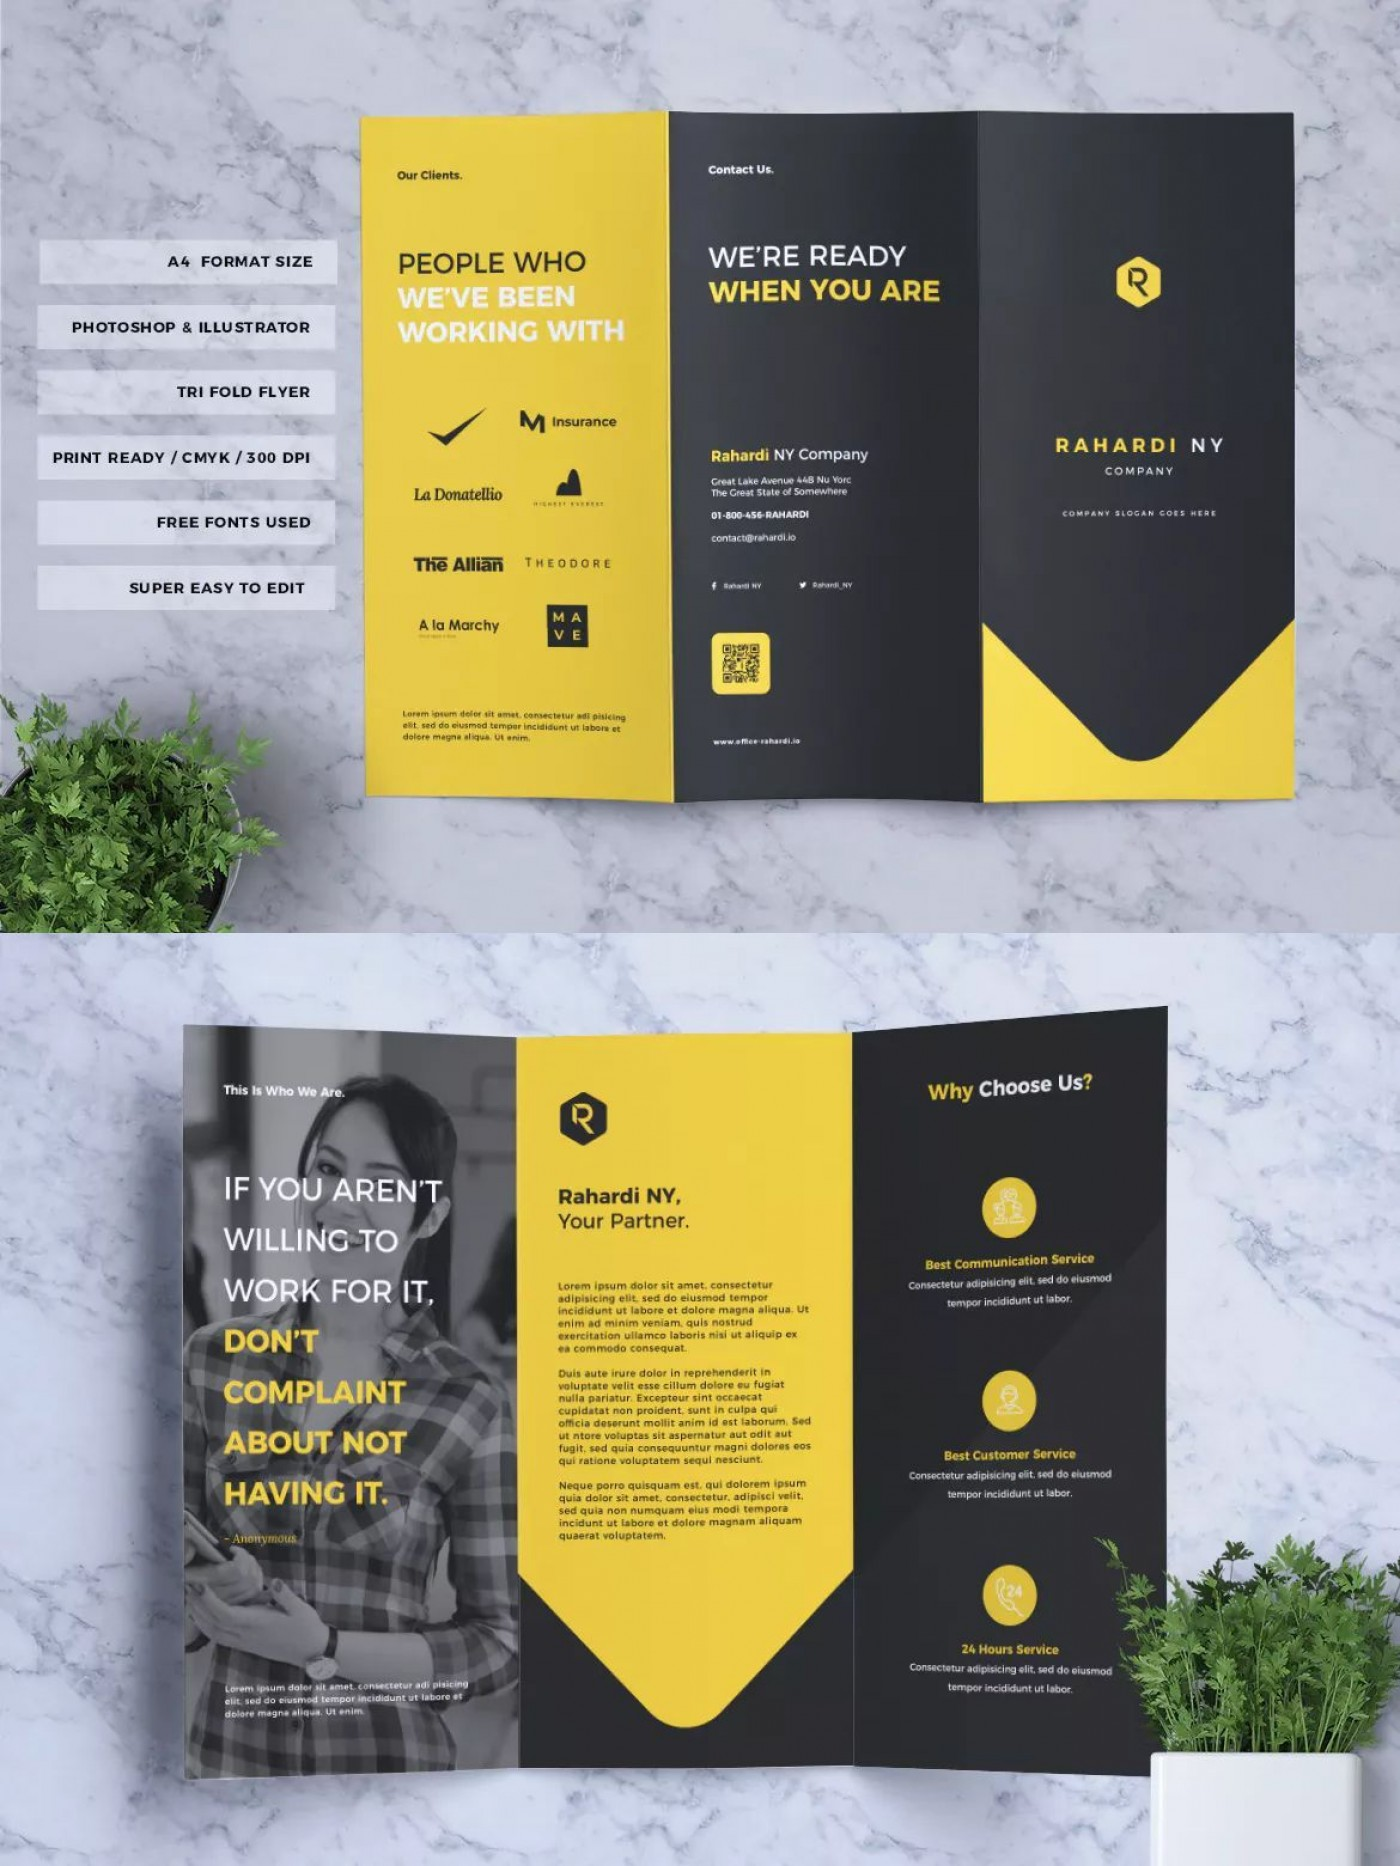 003 Shocking Photoshop Brochure Template Psd Free Download Inspiration 1400